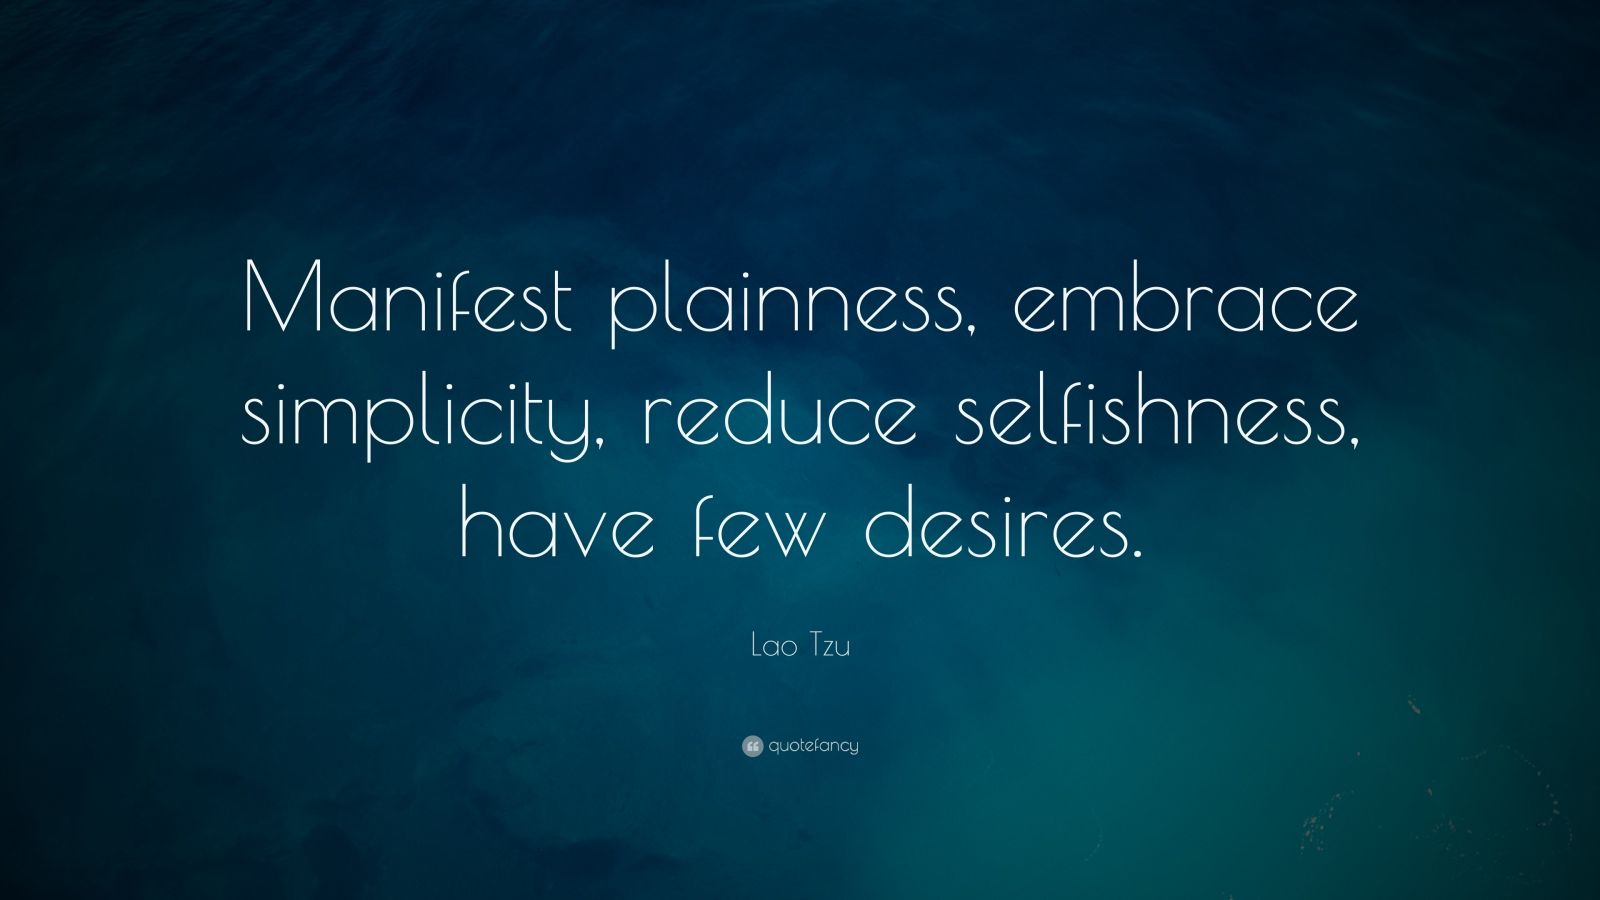 "Lao Tzu Quote: ""Manifest plainness, embrace simplicity, reduce selfishness, have few desires."""